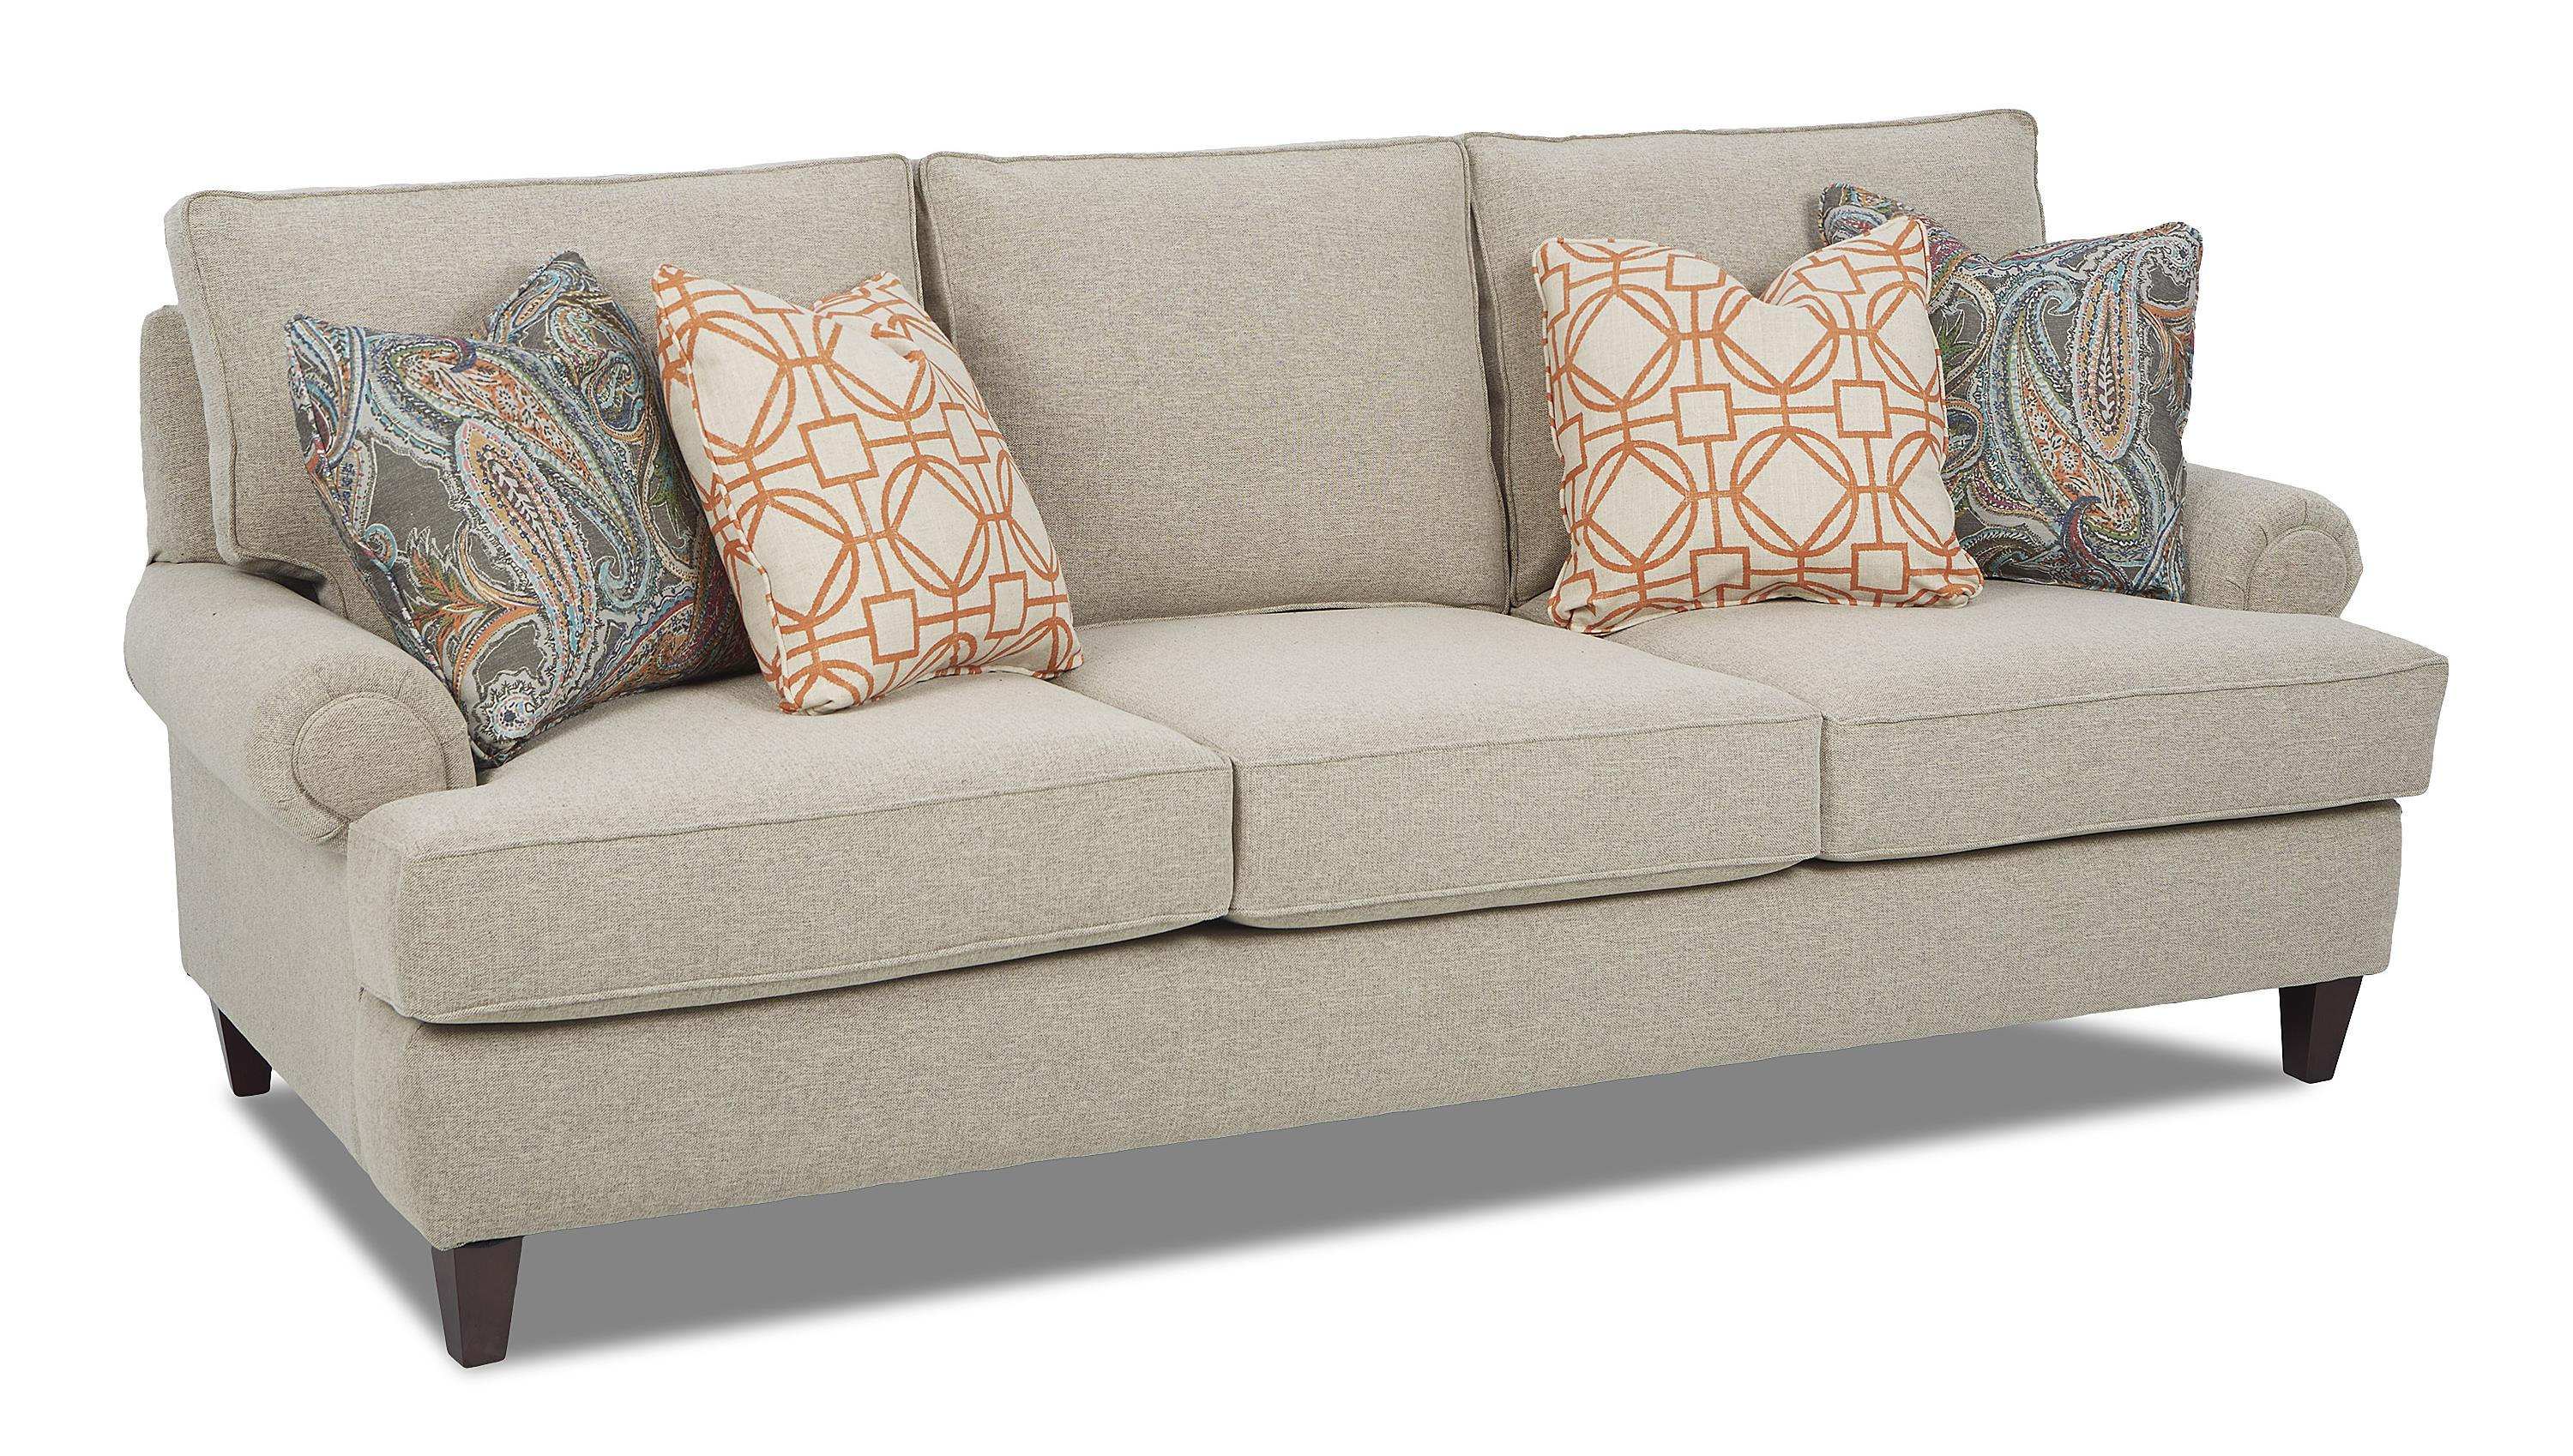 Klaussner Madison Traditional Stationary Sofa - Item Number: K41300 S-GormanBirch